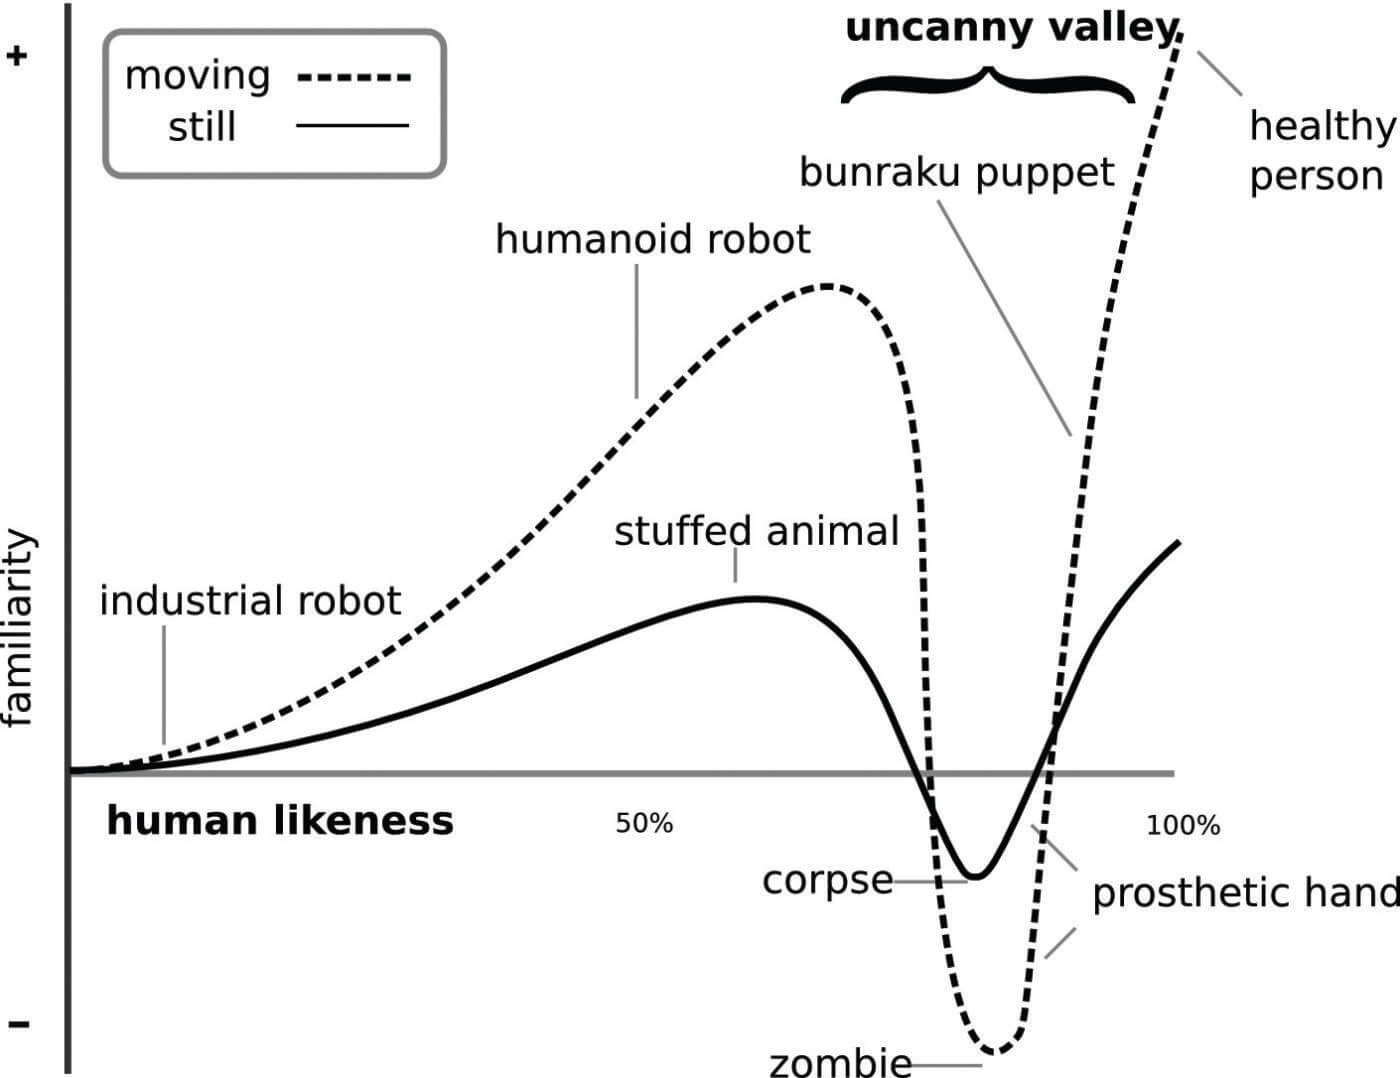 borbach-voice-2-2016_figure-4_uncanny-valley